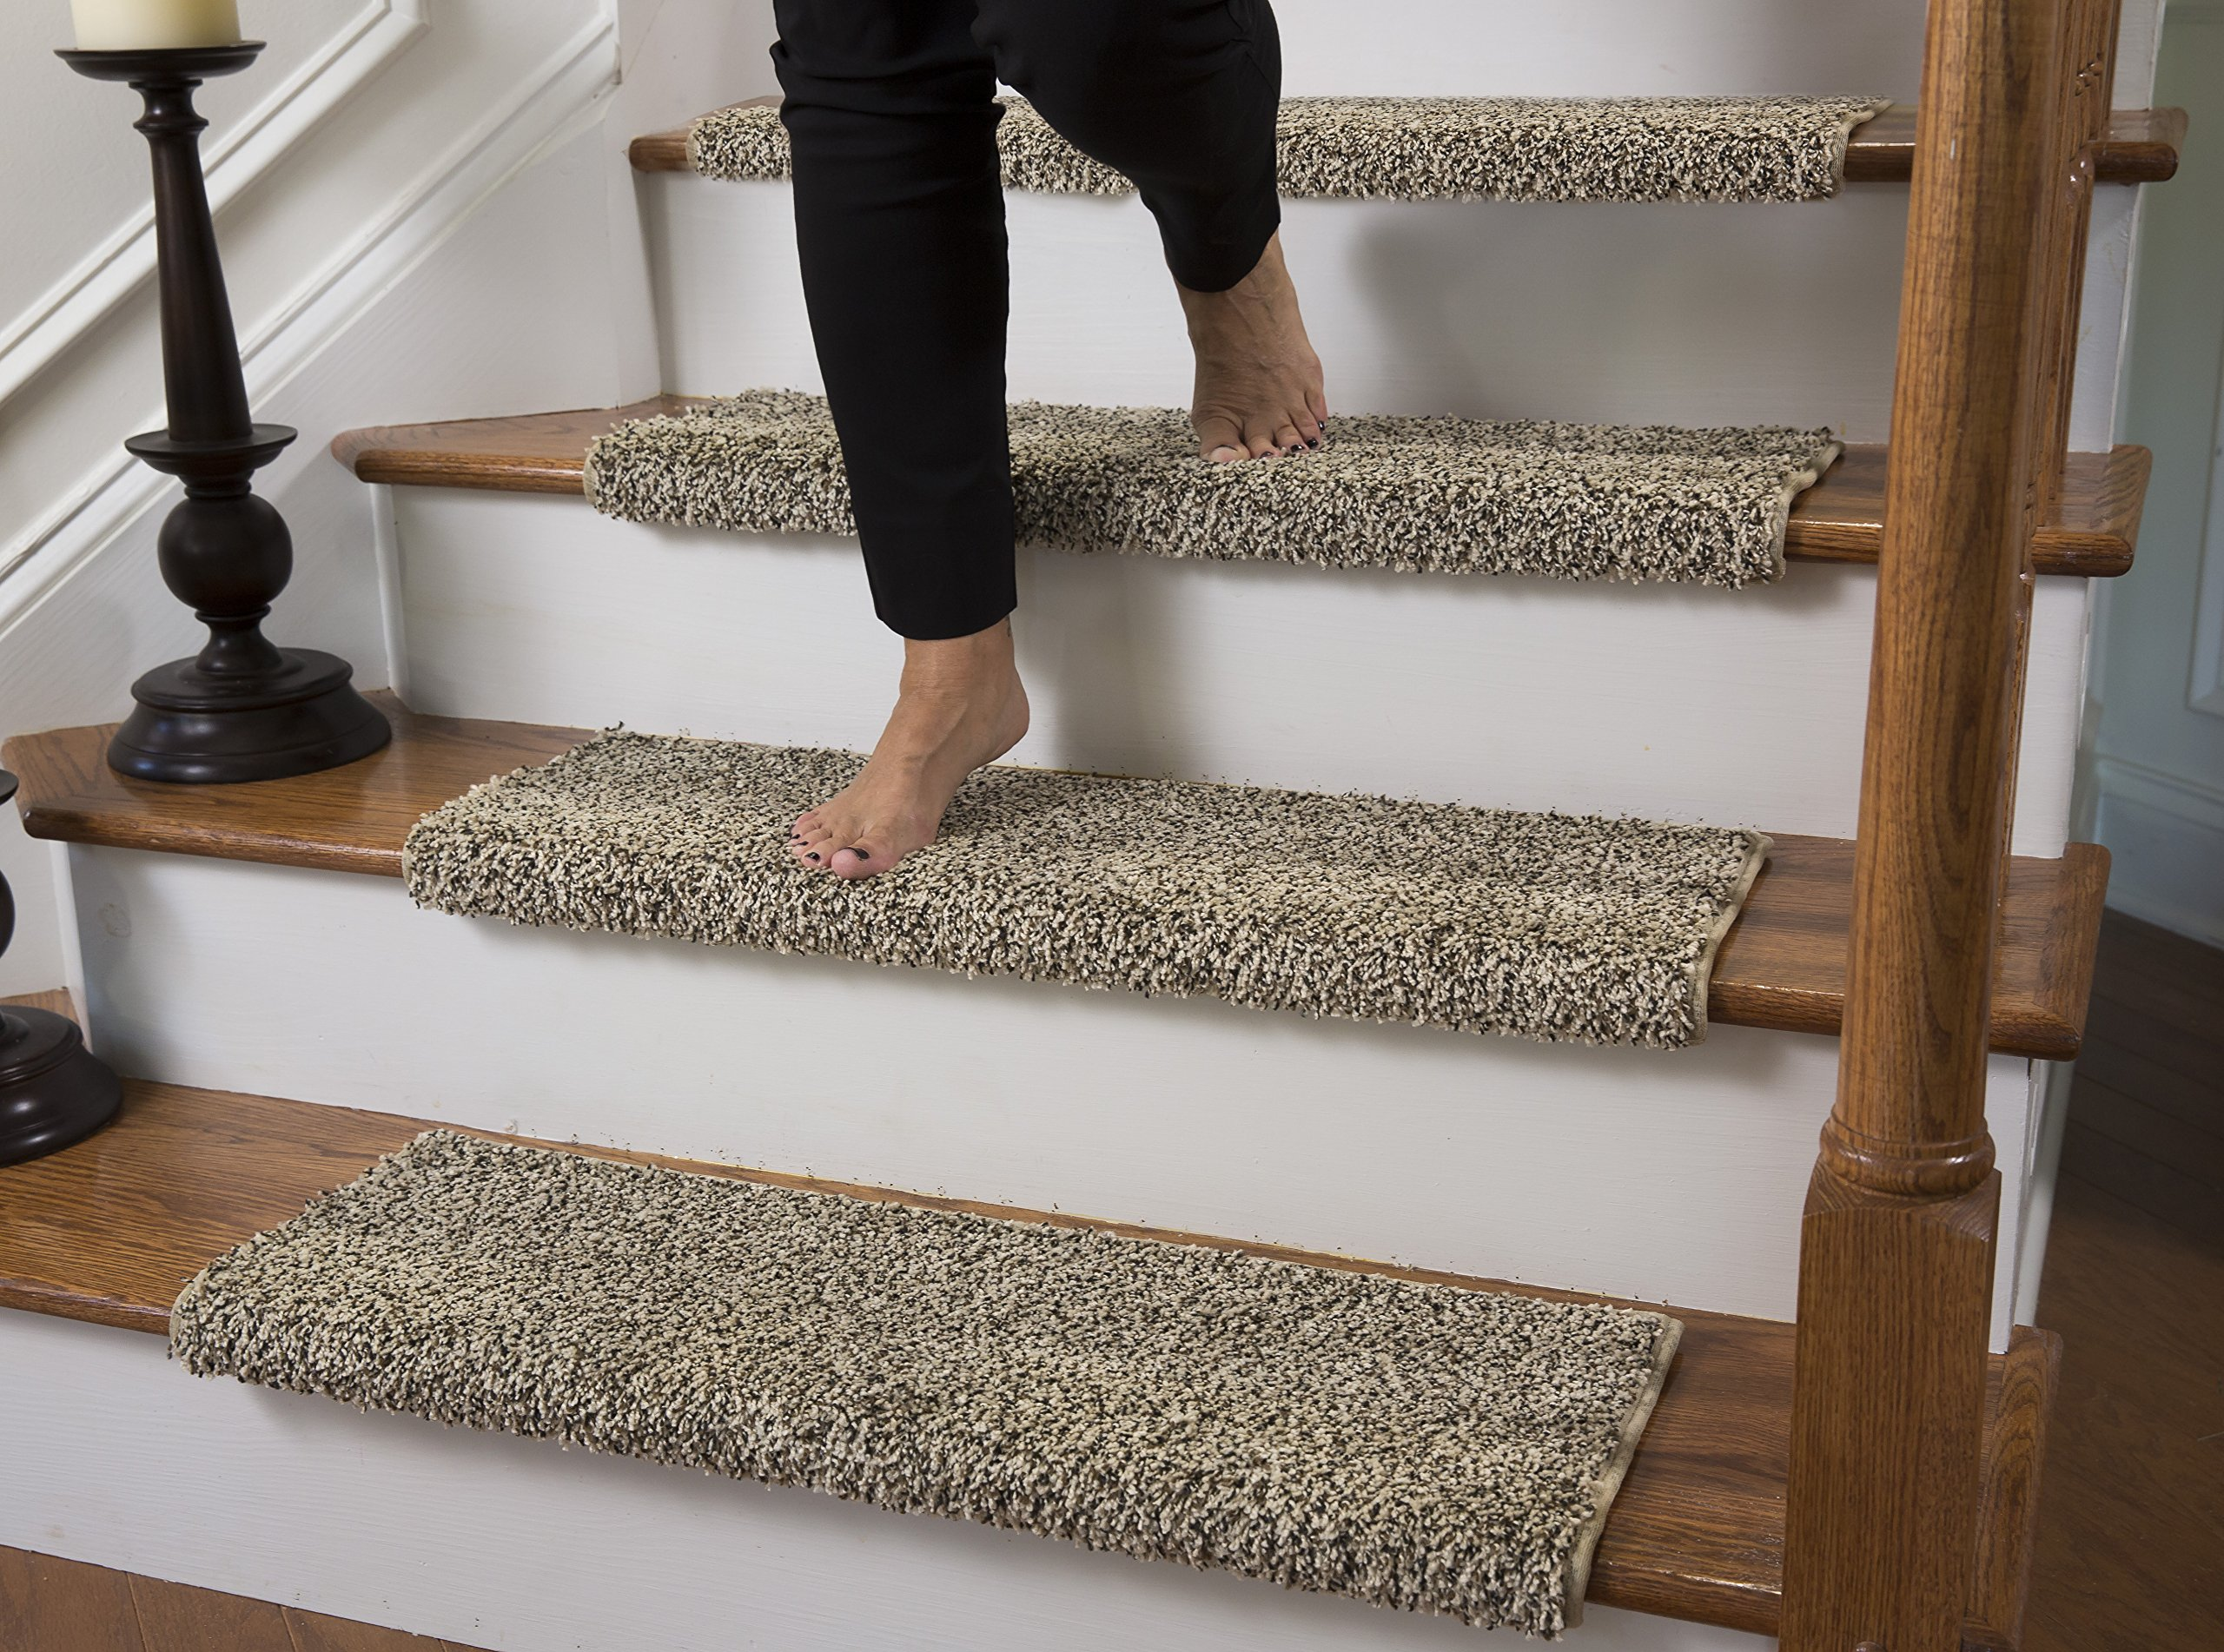 Get Quotations Tread Comfort Caprice Bullnose Carpet Stair With Adhesive Padding By Single 31